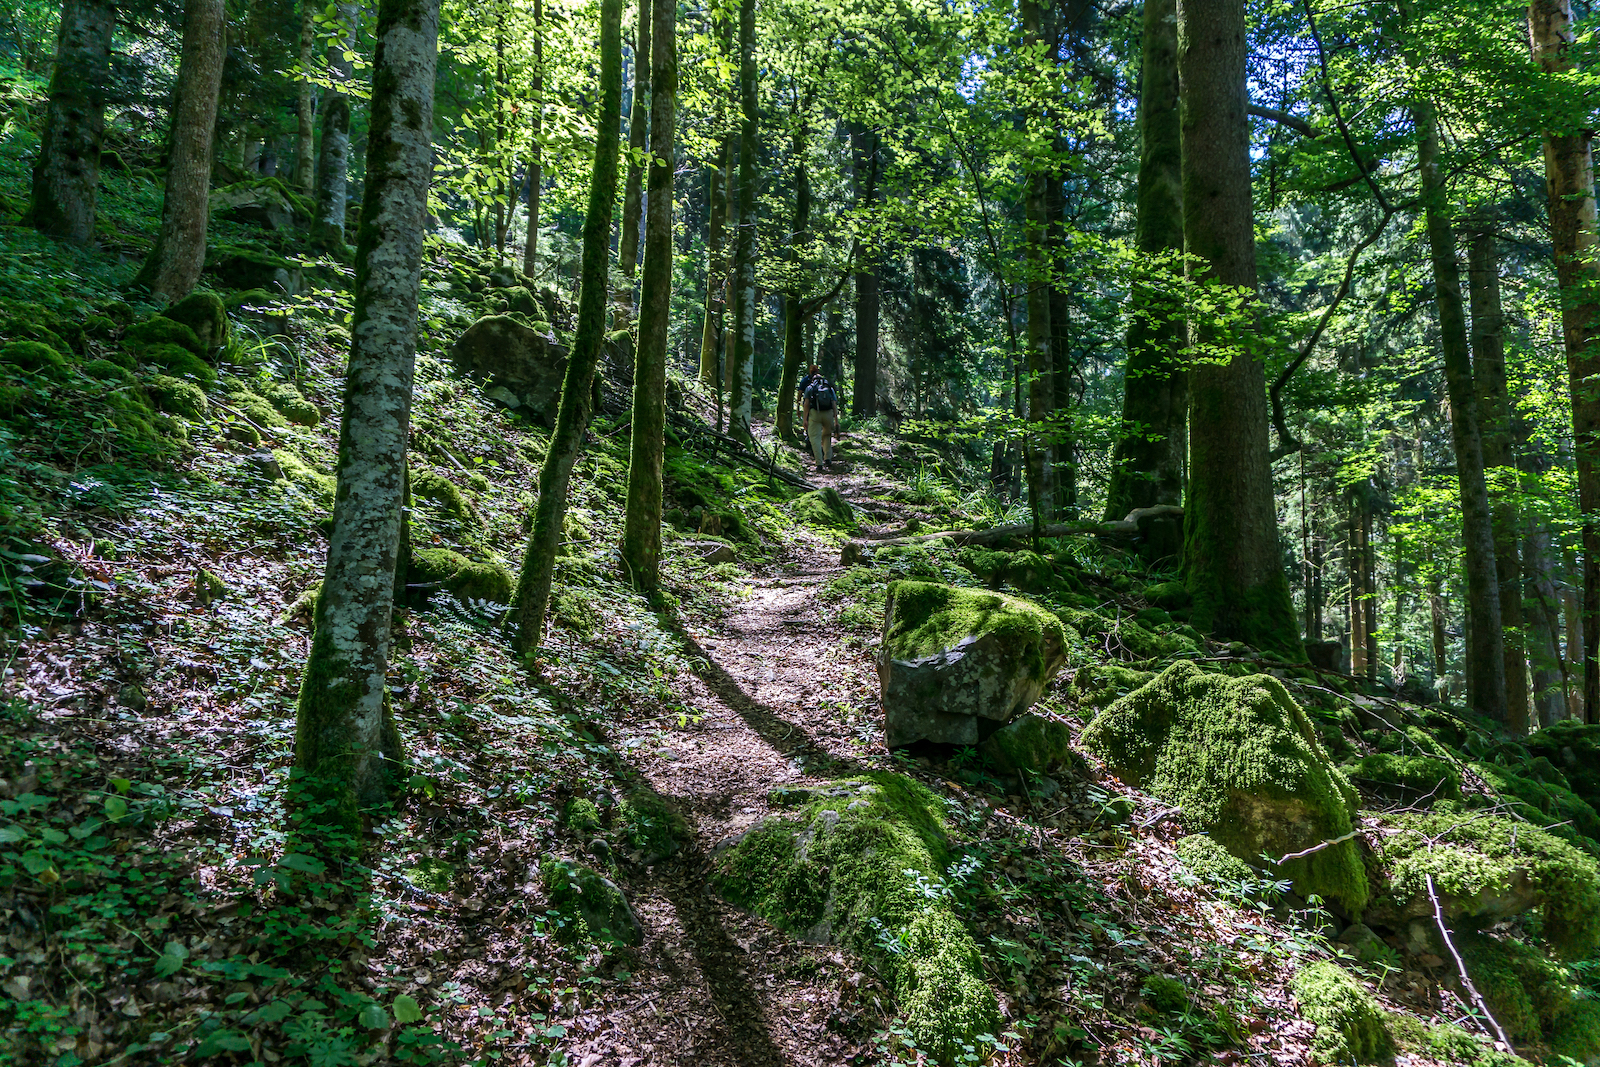 Black Forest of Germany